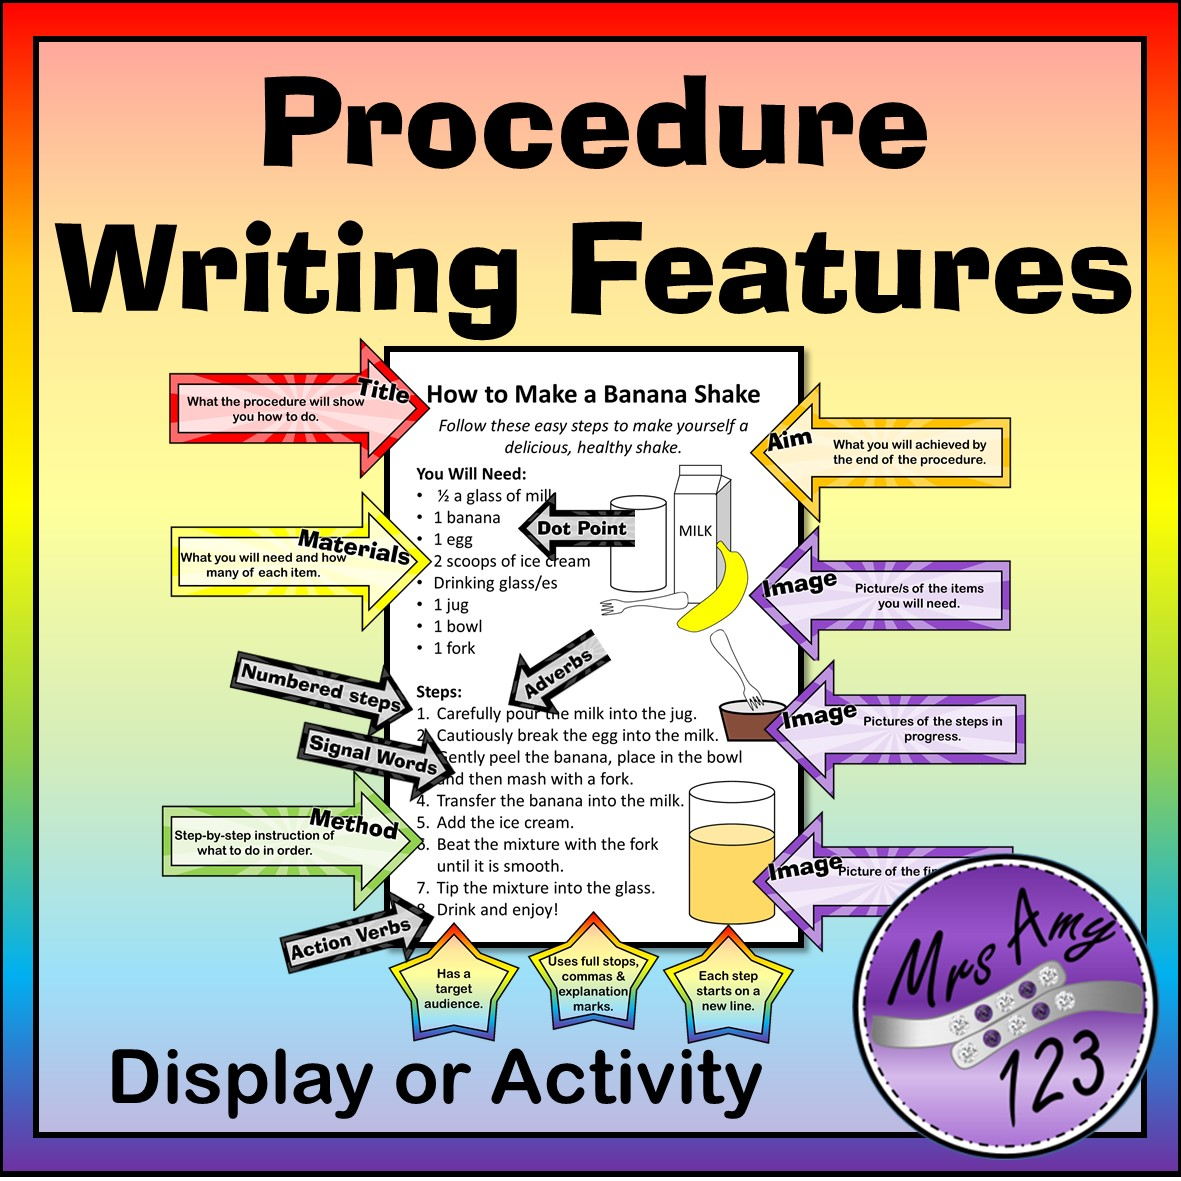 procedural writing Tips on writing effective procedural documents, policies and procedures to add value to your business.